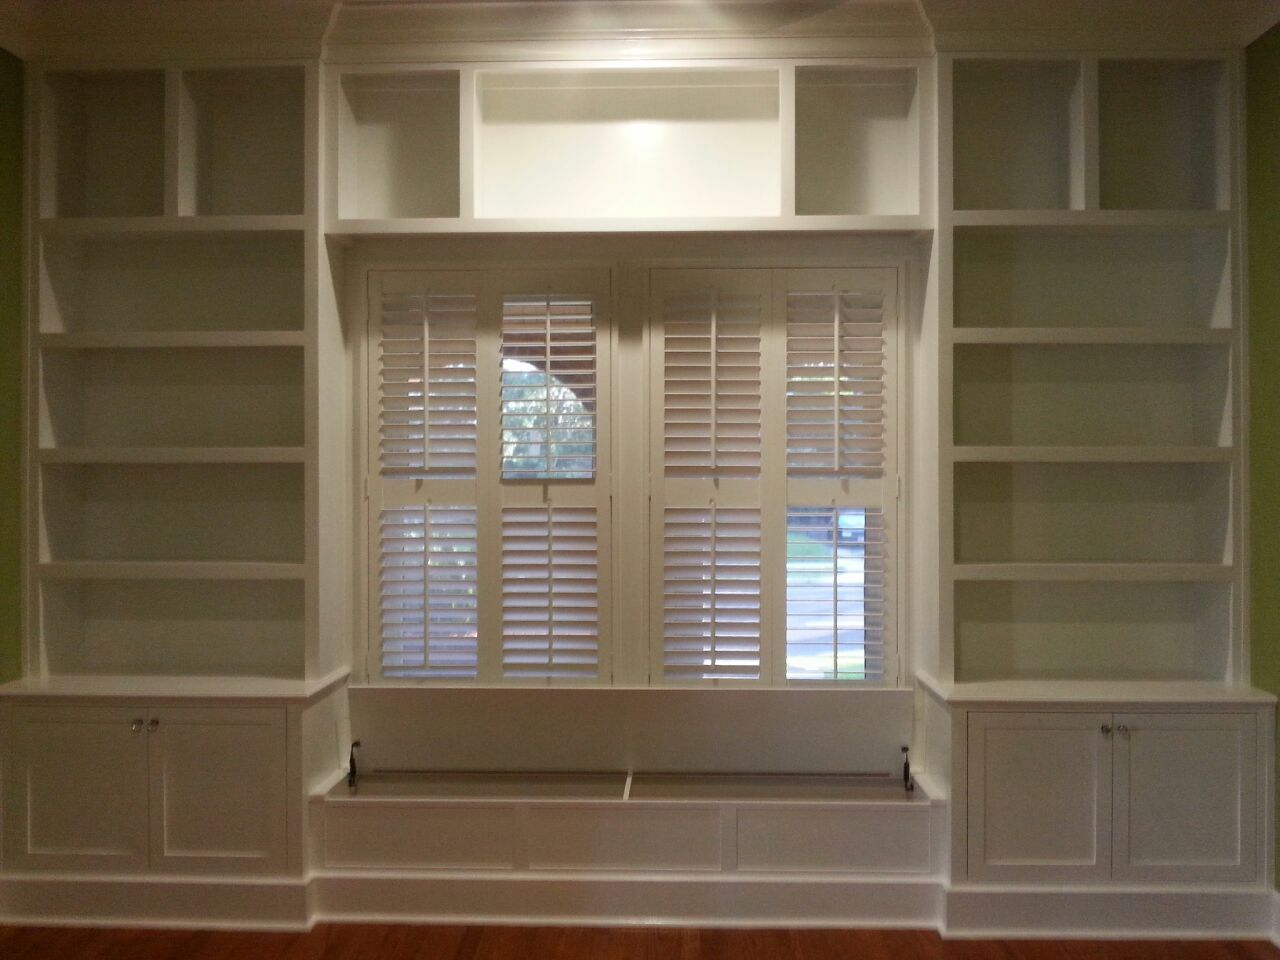 Paint Grade Cabinets 1930s Style Kitchen Cabinets With Inset Doors And Drawers And